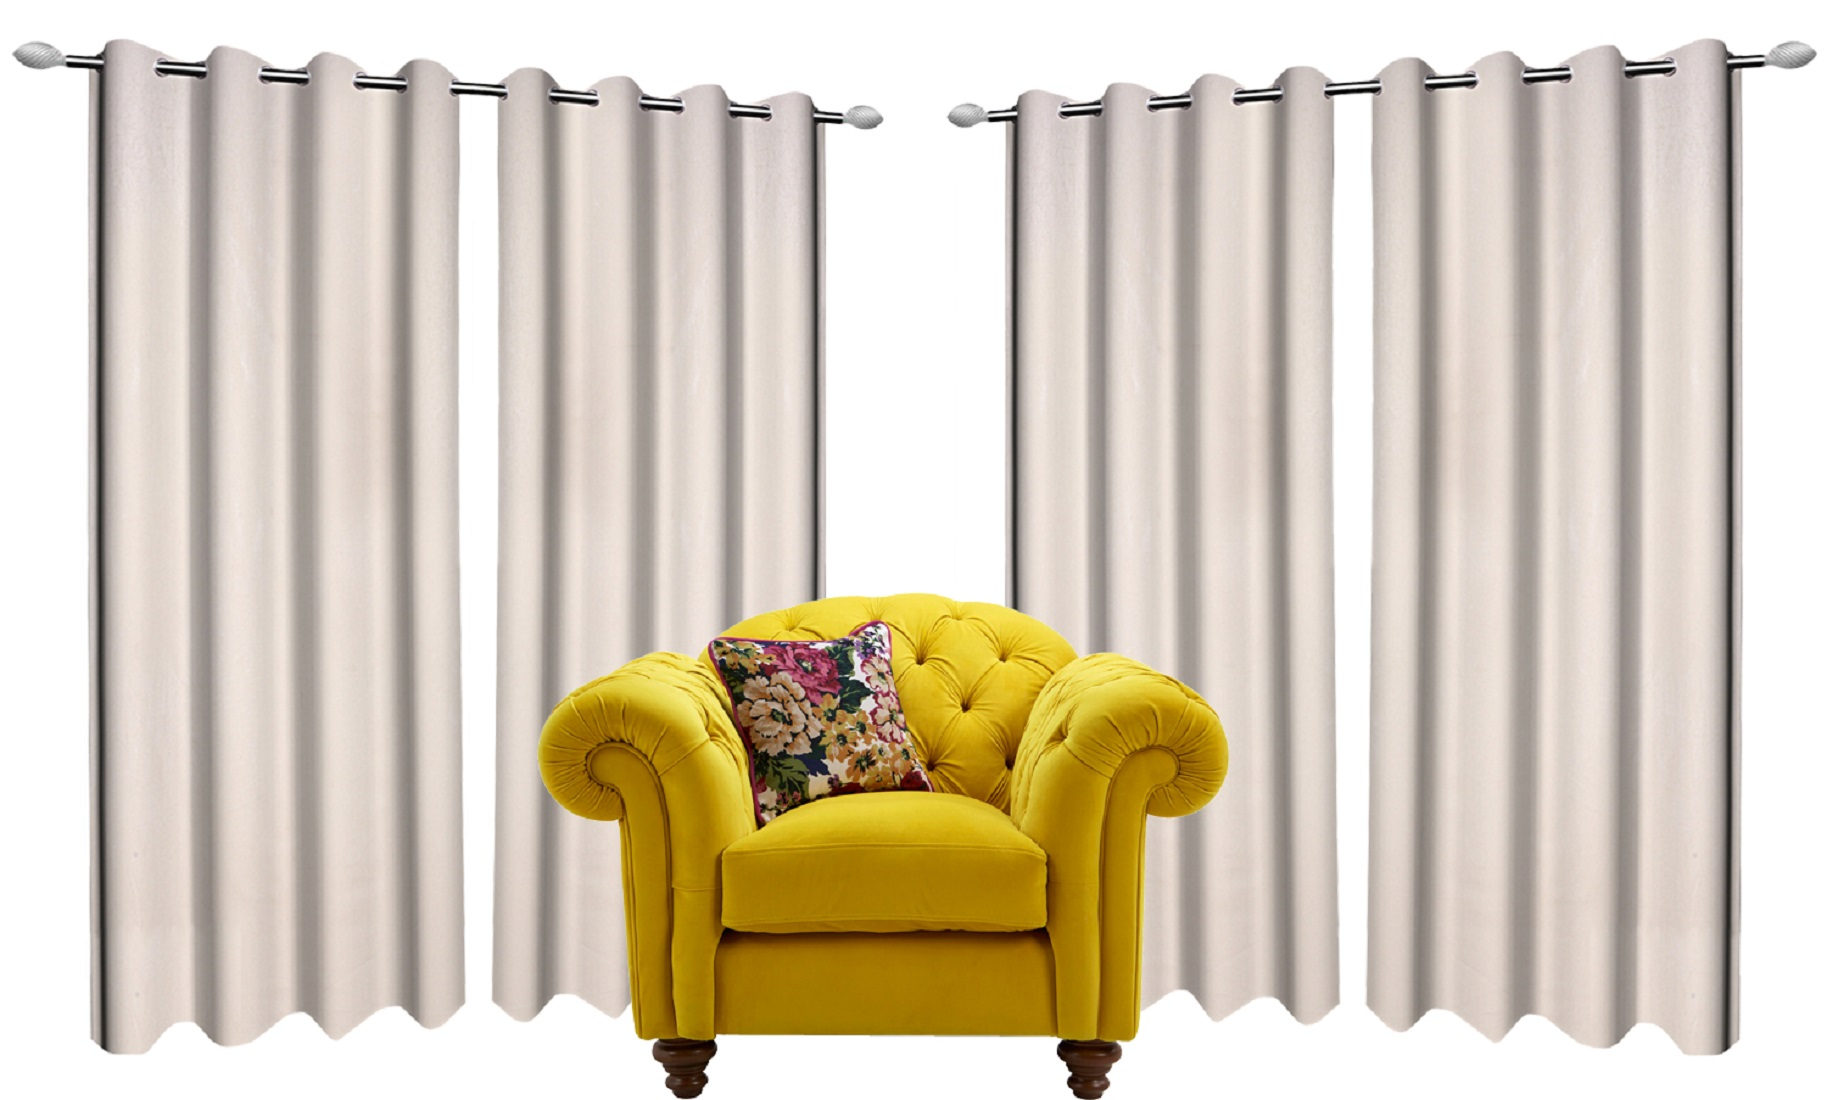 Kuber Industries 6 Pieces Polyester Eyelet Door Curtain 7 Feet (Cream)-CTKTC14335